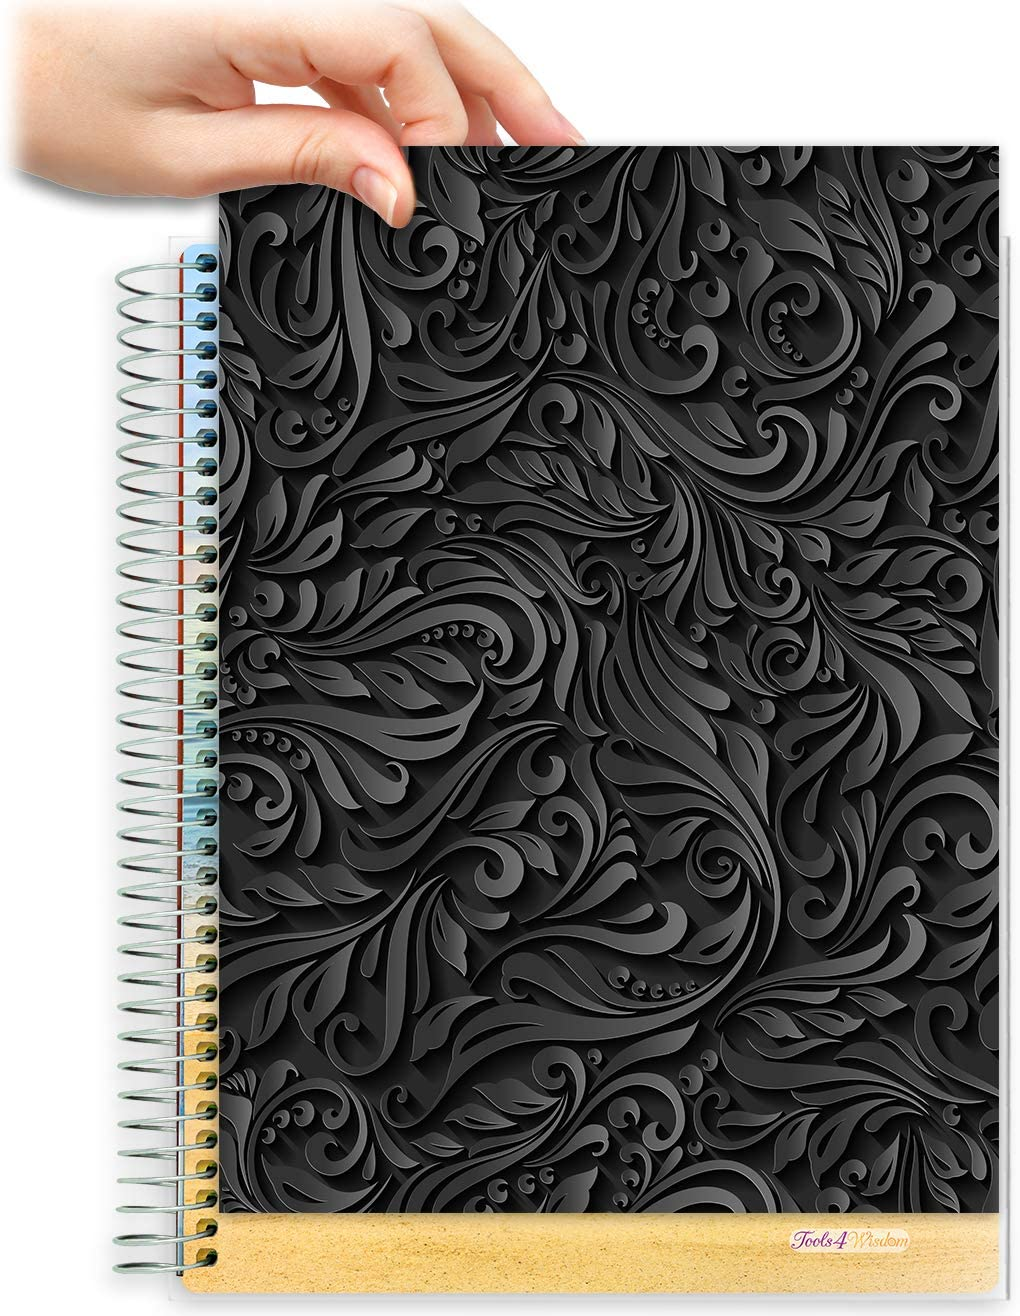 8.5x11 Customizable Softcover Planner • April 2021 to June 2022 Academic Year •  Black Floral